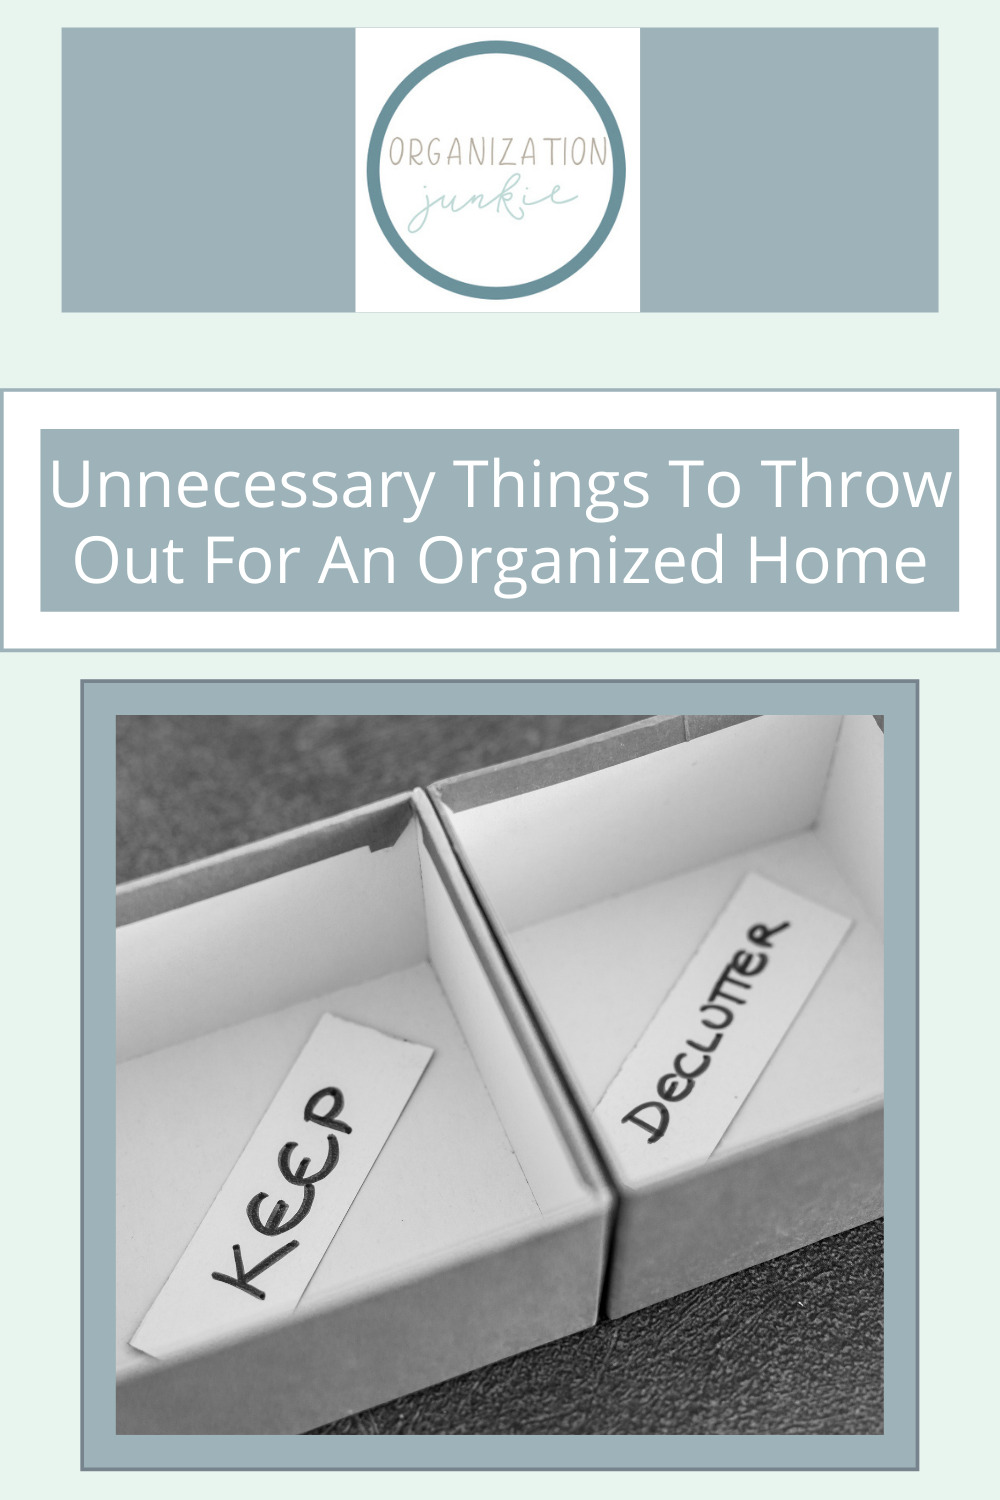 Organizationjunkie.com is the ultimate resource for creative organization and cleaning solutions! Don't waste any more space with unwanted clutter! Check out this list of things you don't need to keep around your home.